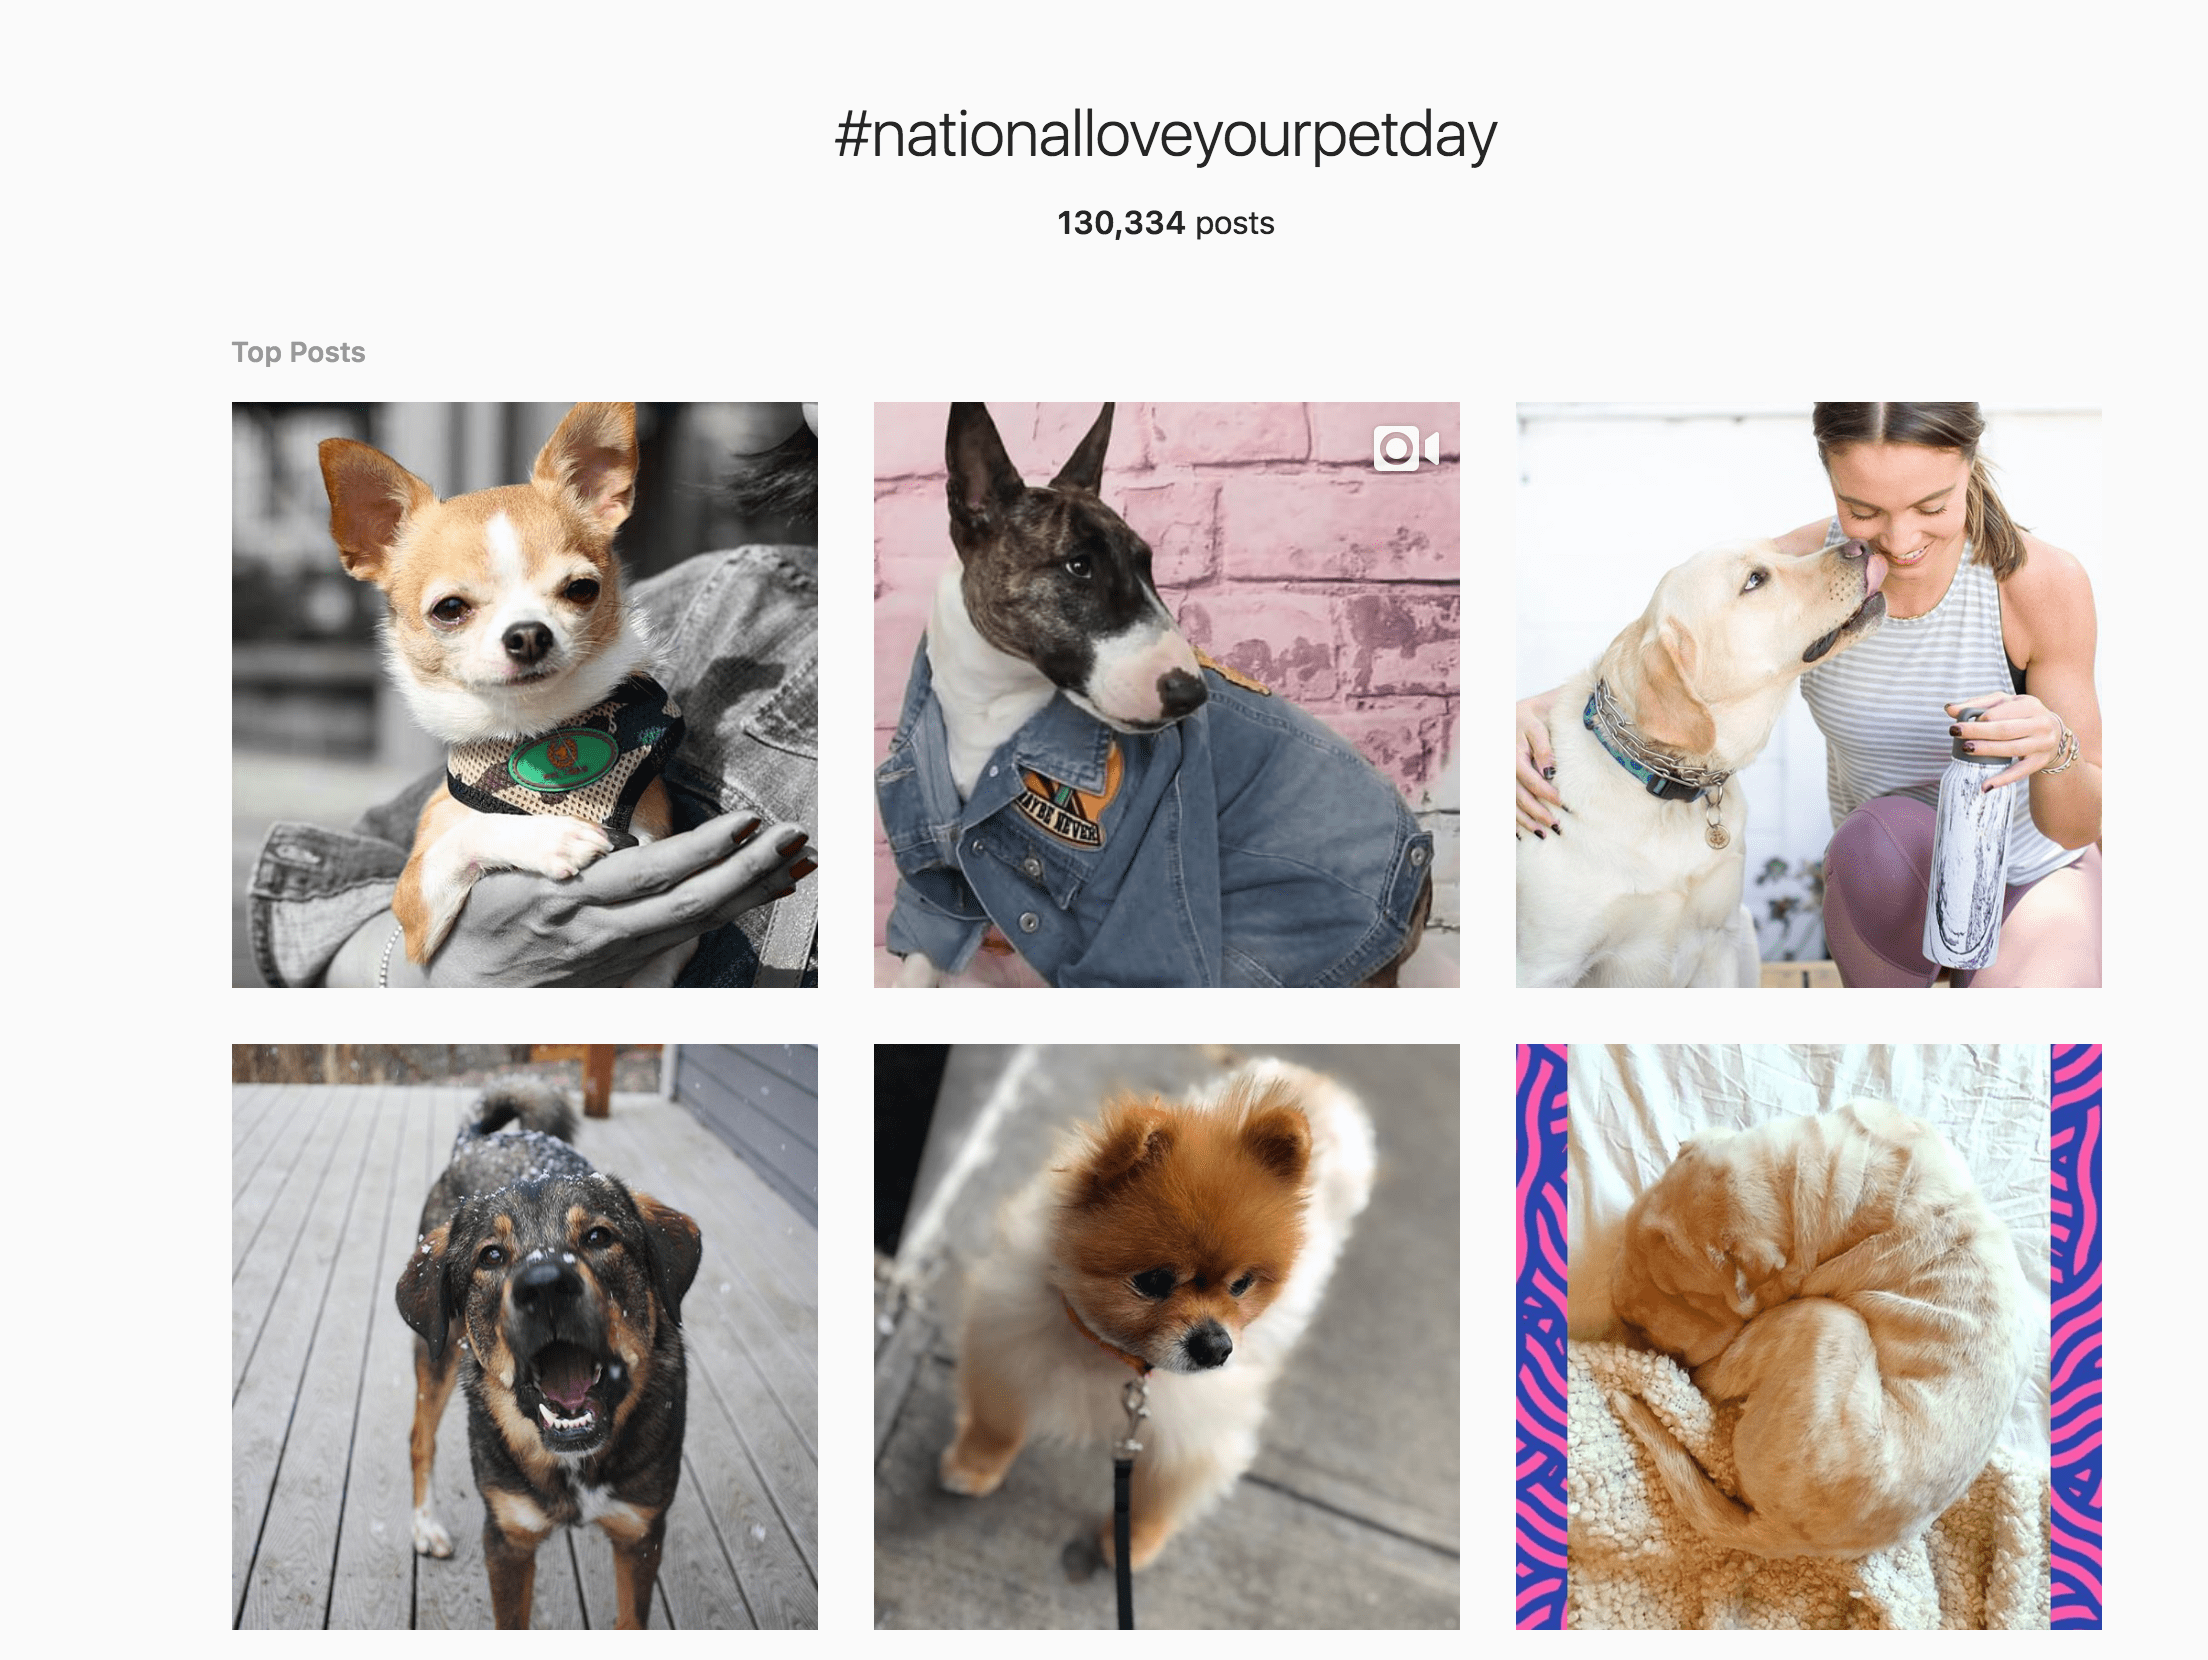 instagram shadowban #nationalloveyourpetday top posts hummingbird creative group